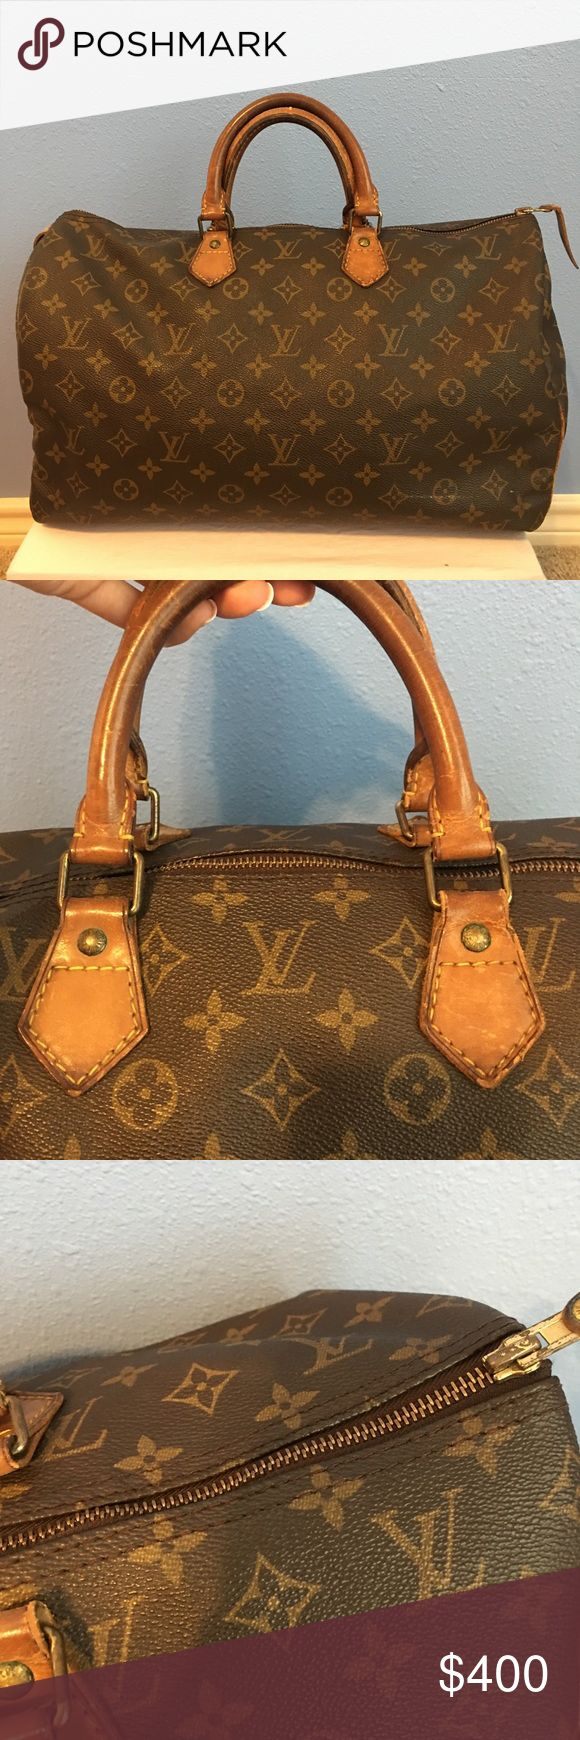 Louis Vuitton Speedy 40 Gently Used Condition! Comes With lock and key! Louis Vuitton Bags Satchels